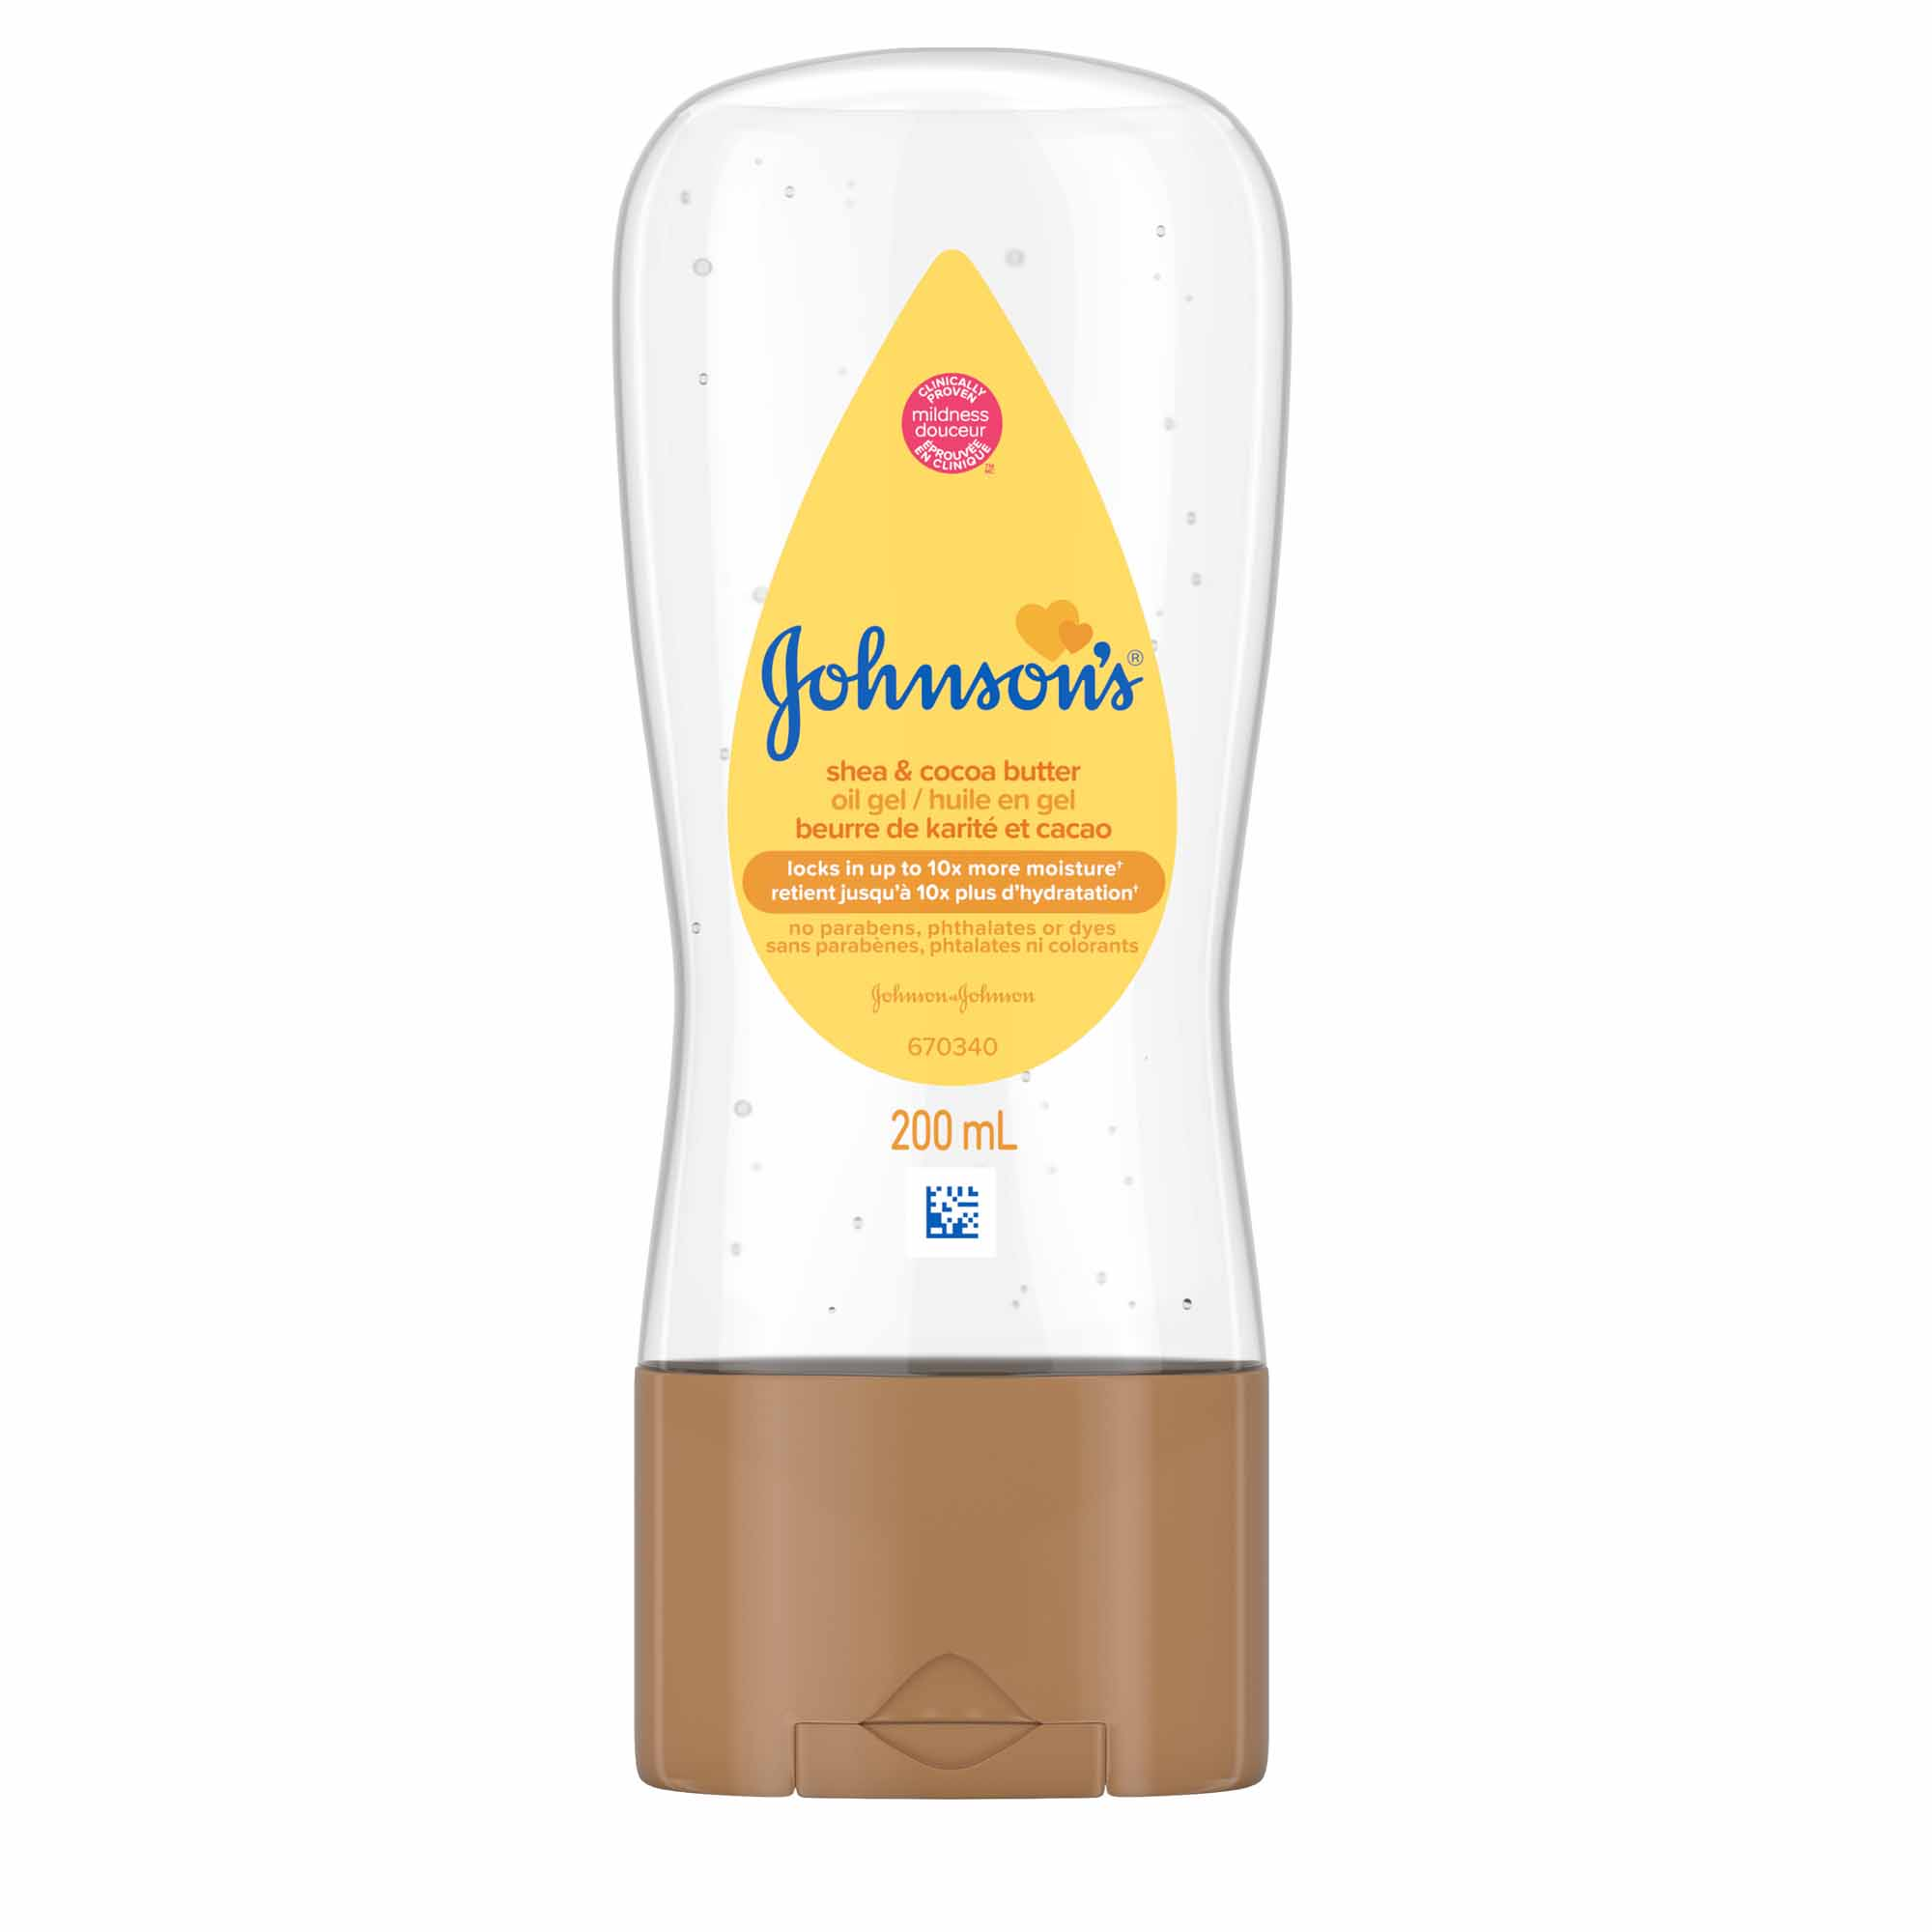 JOHNSON'S® shea cocoa butter baby oil gel front hero